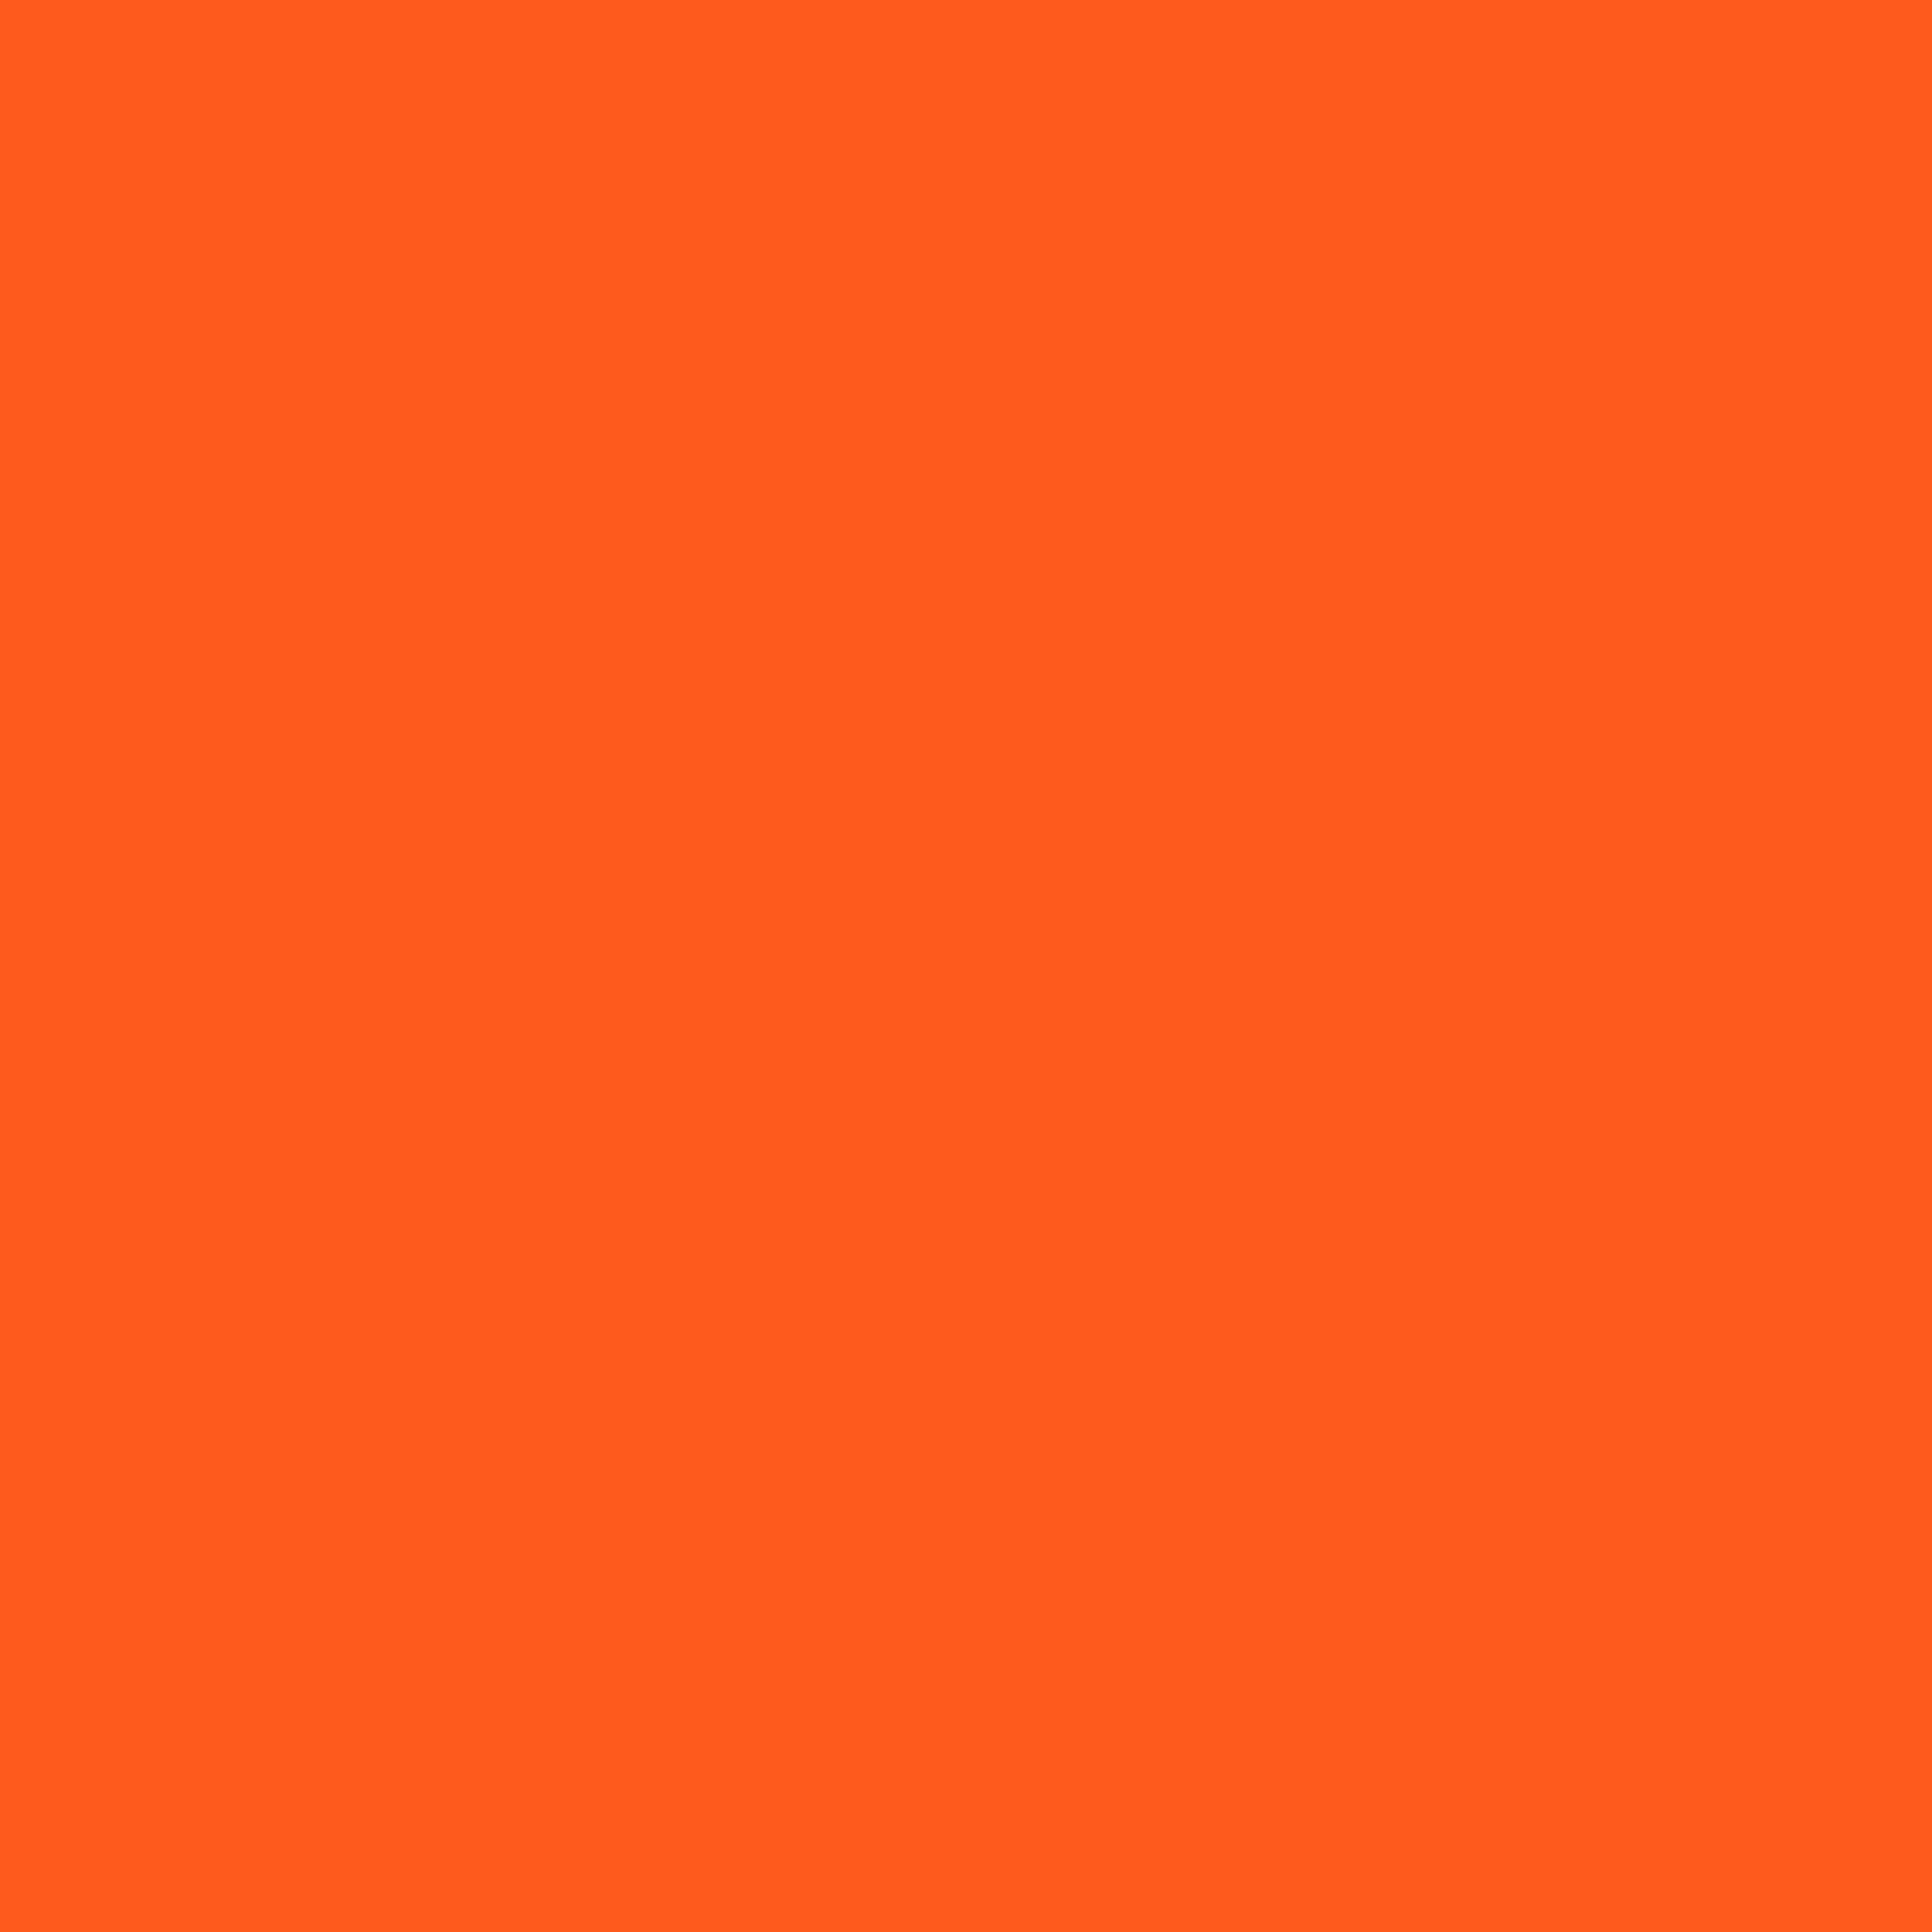 2048x2048 Giants Orange Solid Color Background